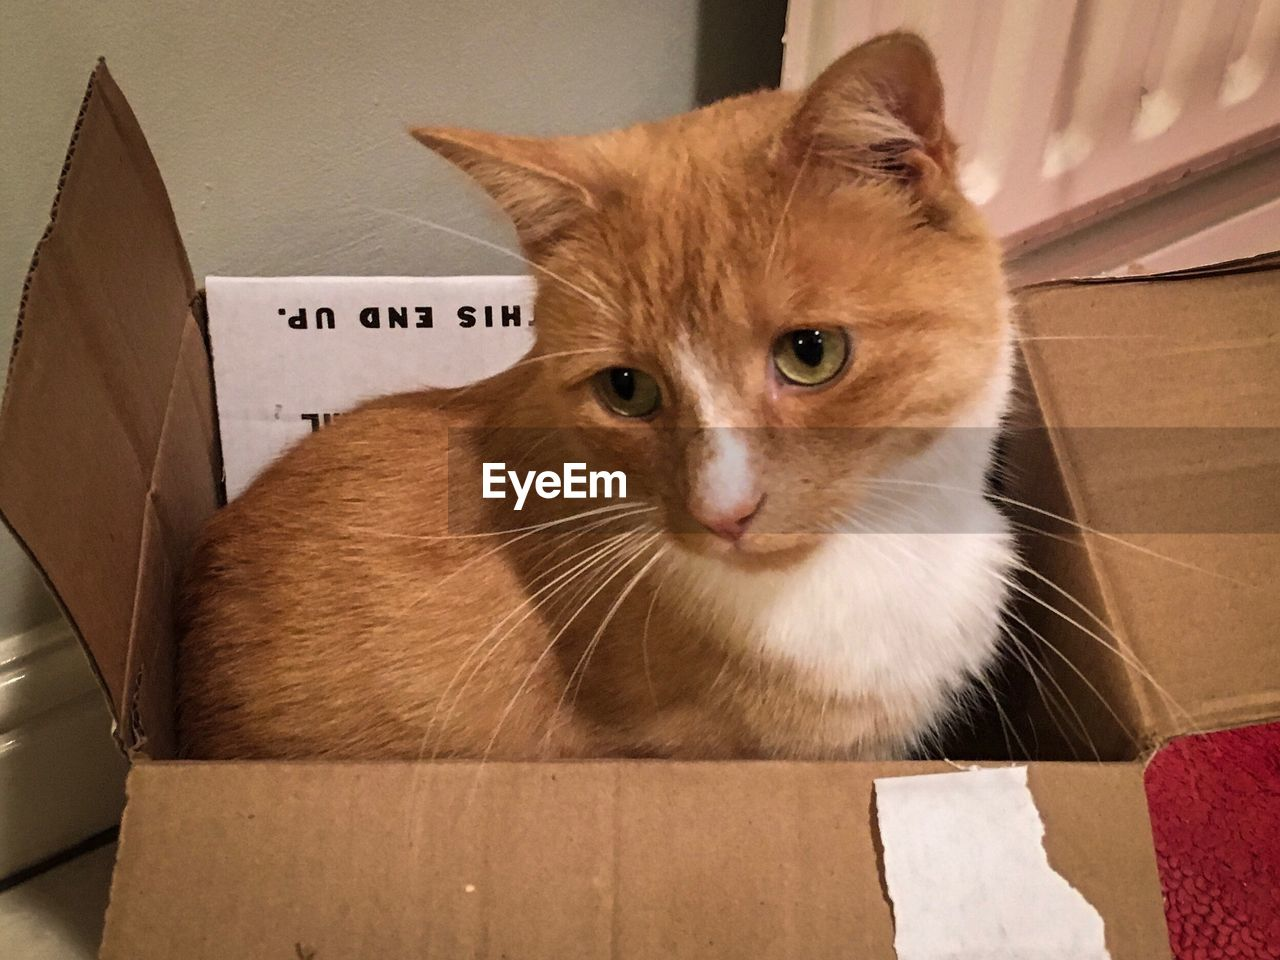 pets, cardboard, domestic, animal themes, animal, mammal, cardboard box, domestic animals, domestic cat, cat, box, vertebrate, one animal, feline, box - container, indoors, container, whisker, no people, portrait, ginger cat